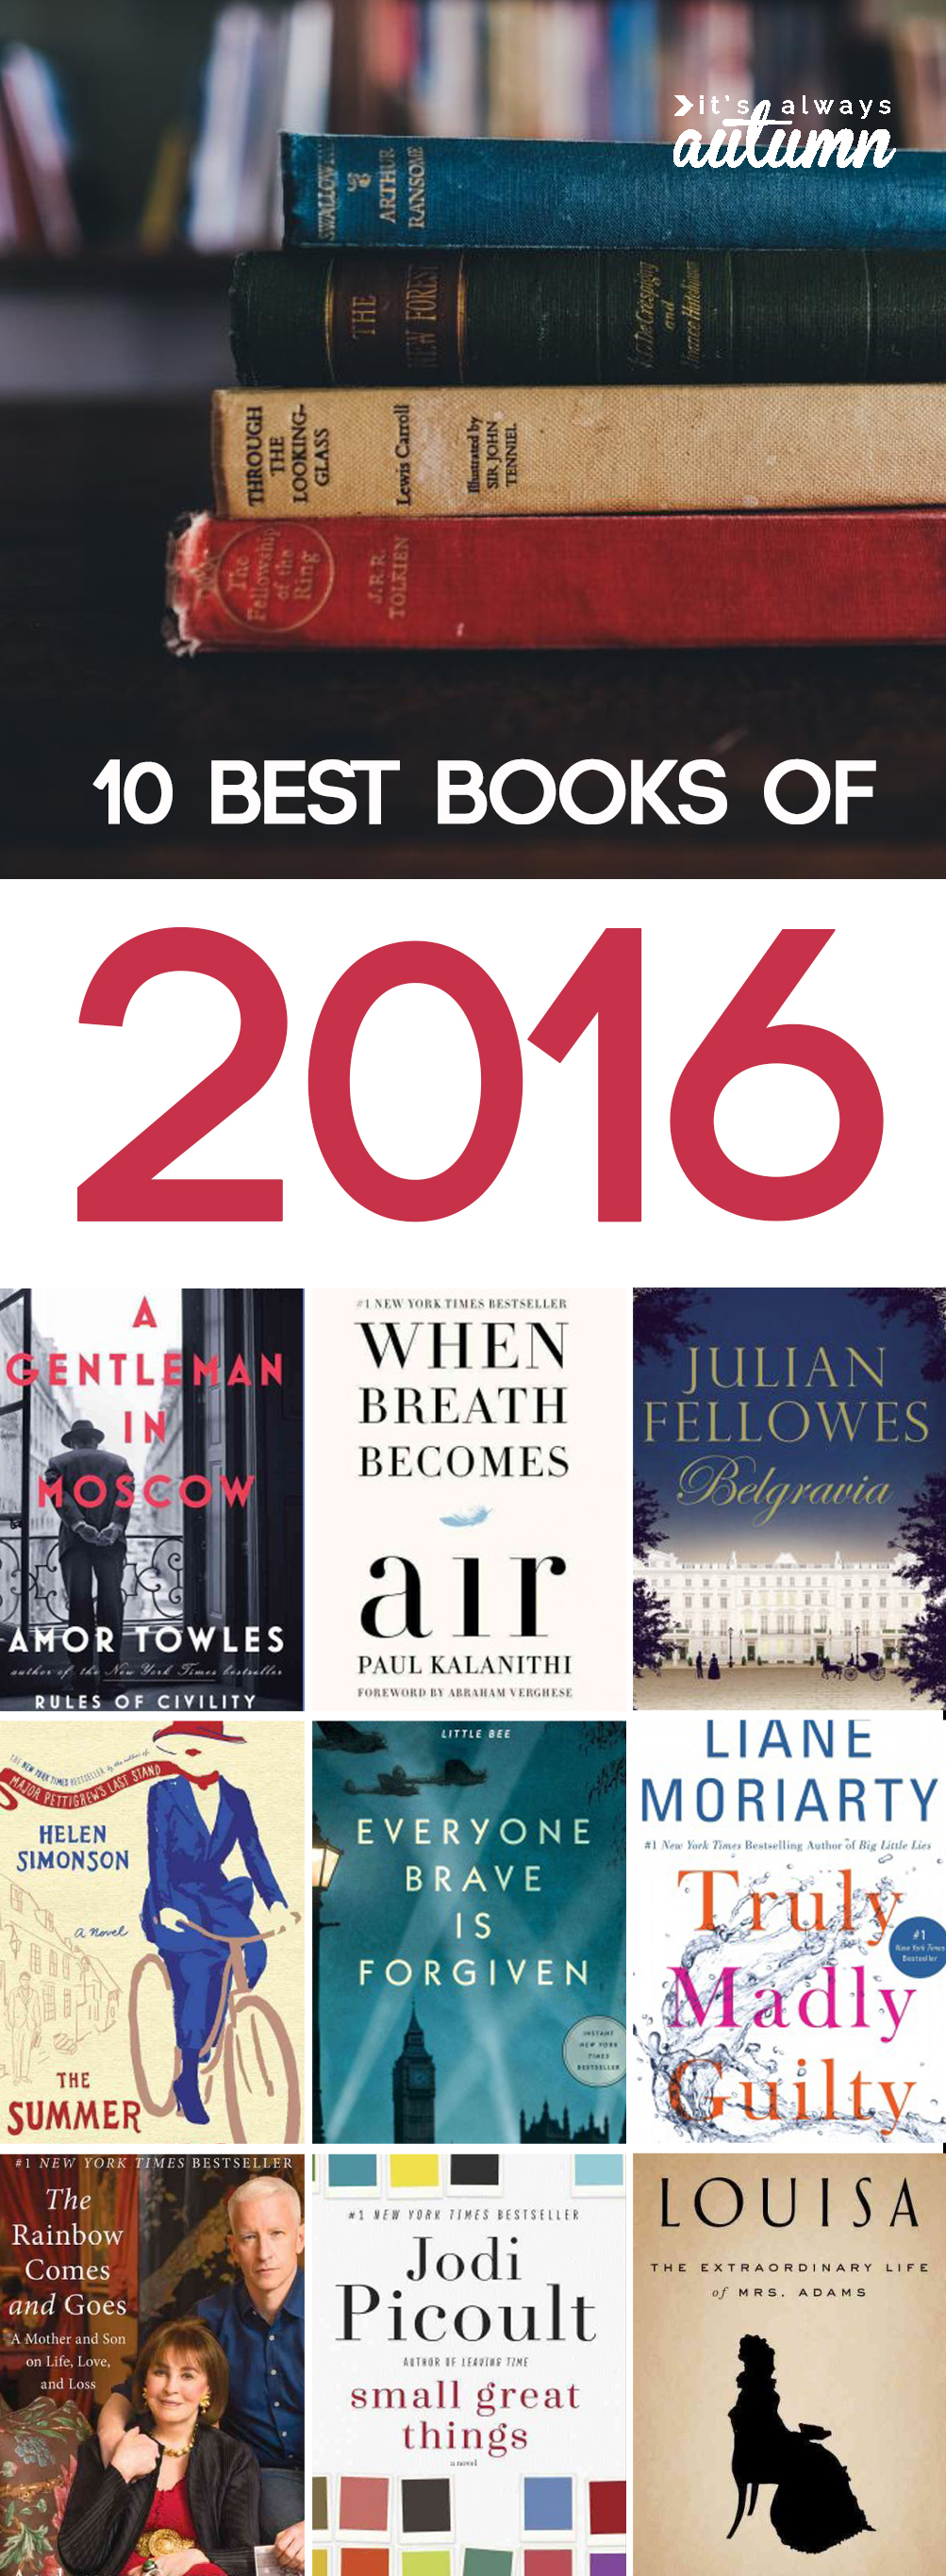 10 best books of 2016! Ten books not to miss from this past year. Great book list and gift ideas.